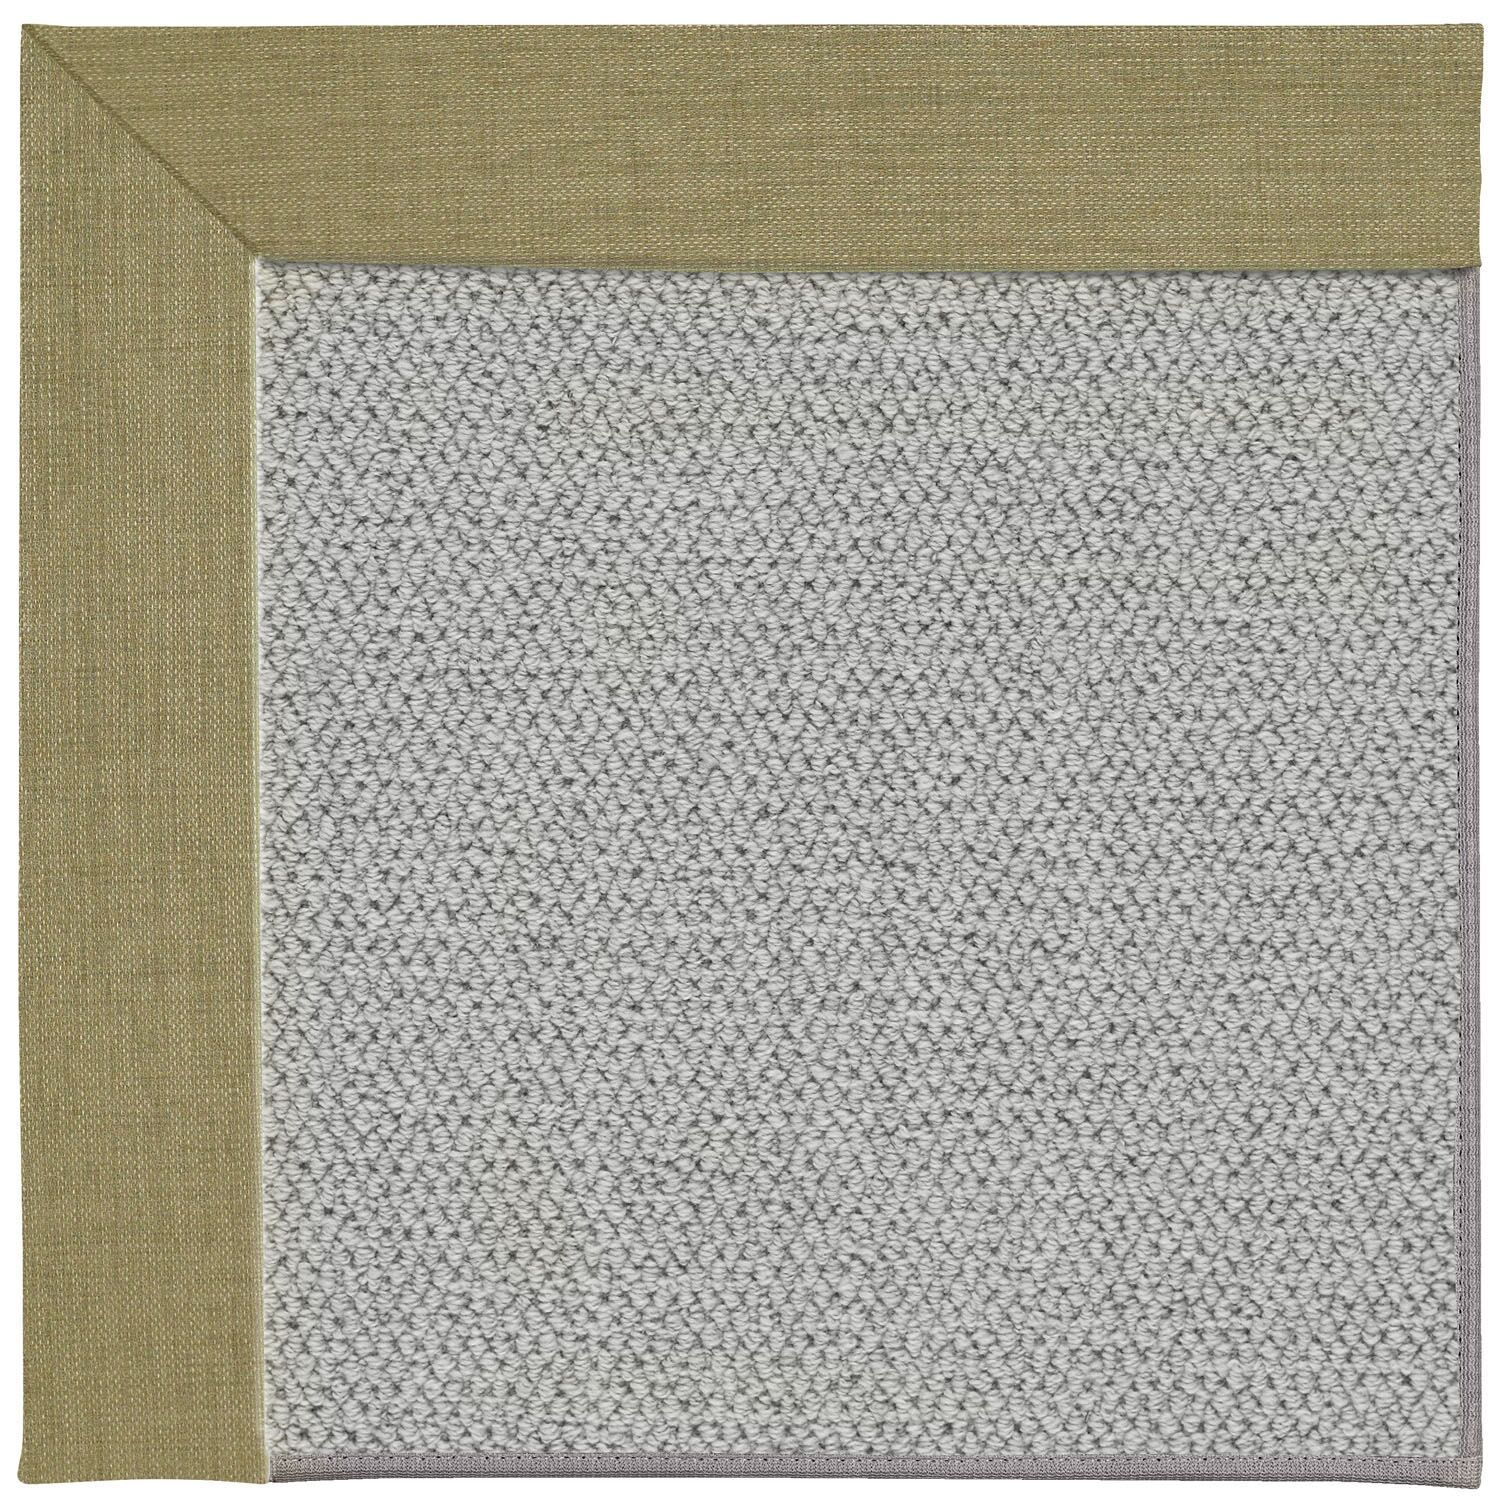 Barrett Silver Machine Tufted Basil/Gray Area Rug Rug Size: Rectangle 12' x 15'